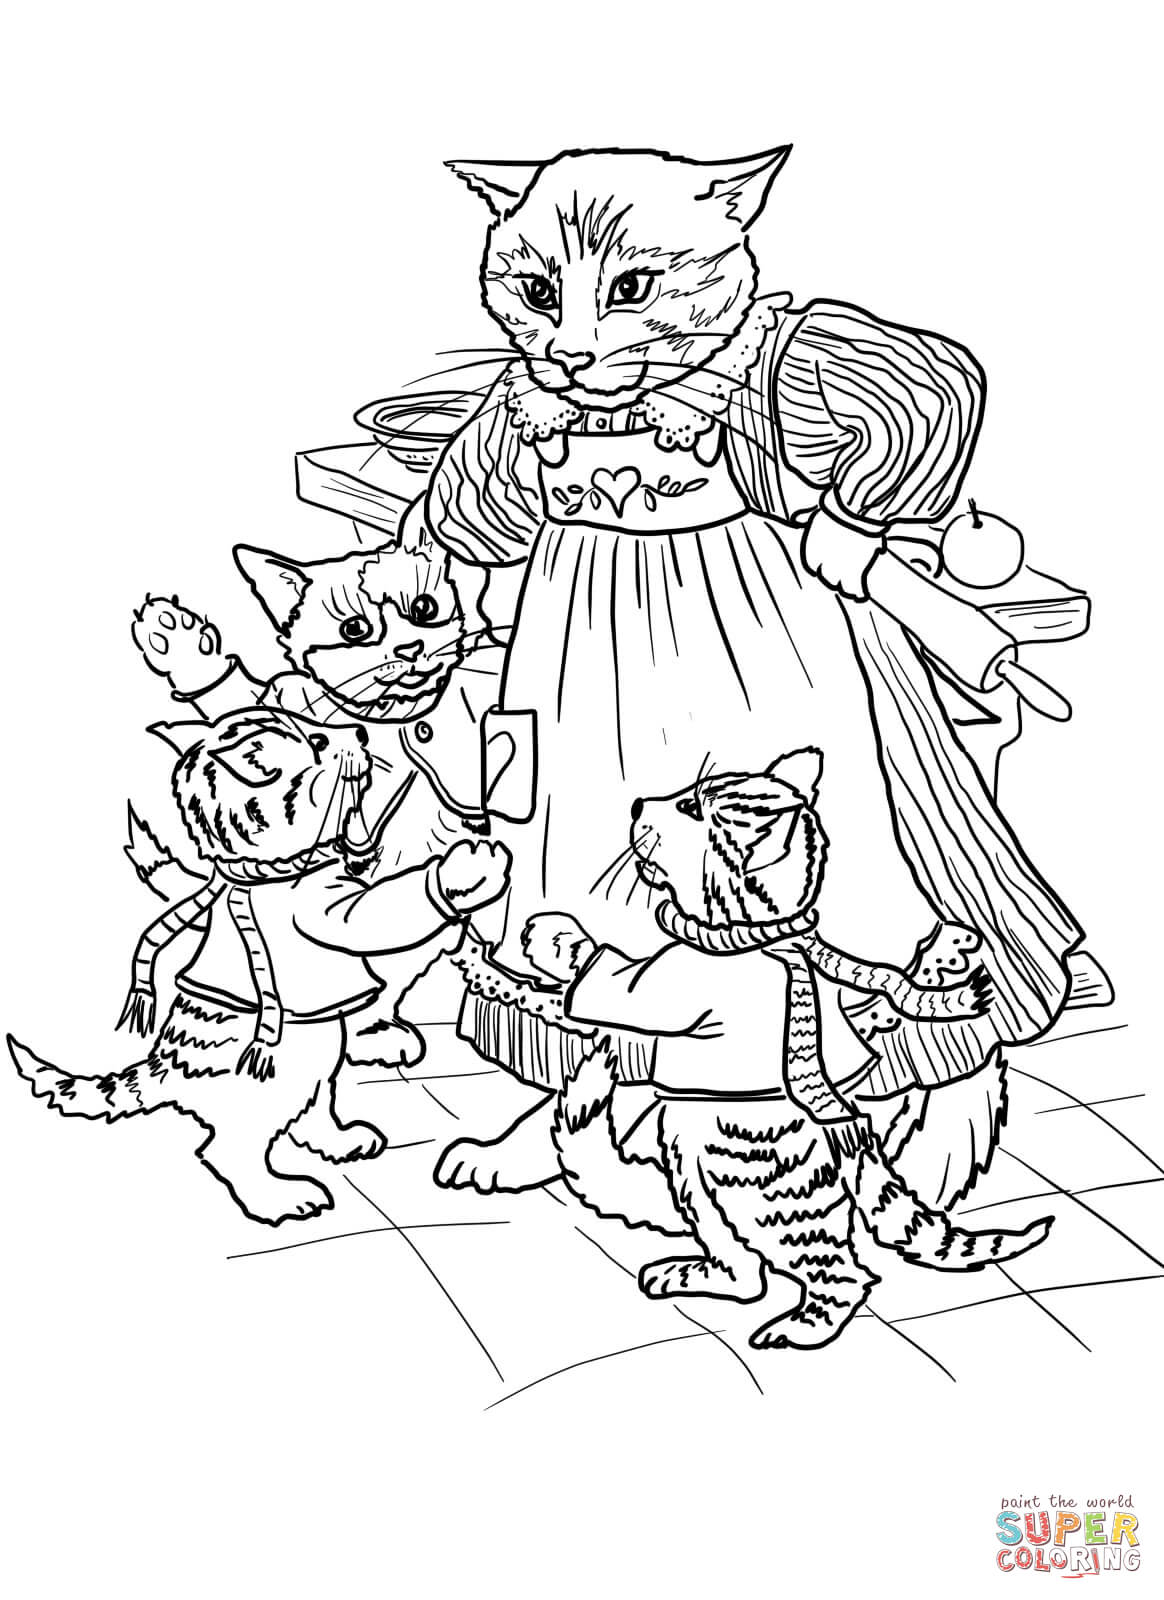 3 Little Kittens Have Lost Their Mittens coloring page